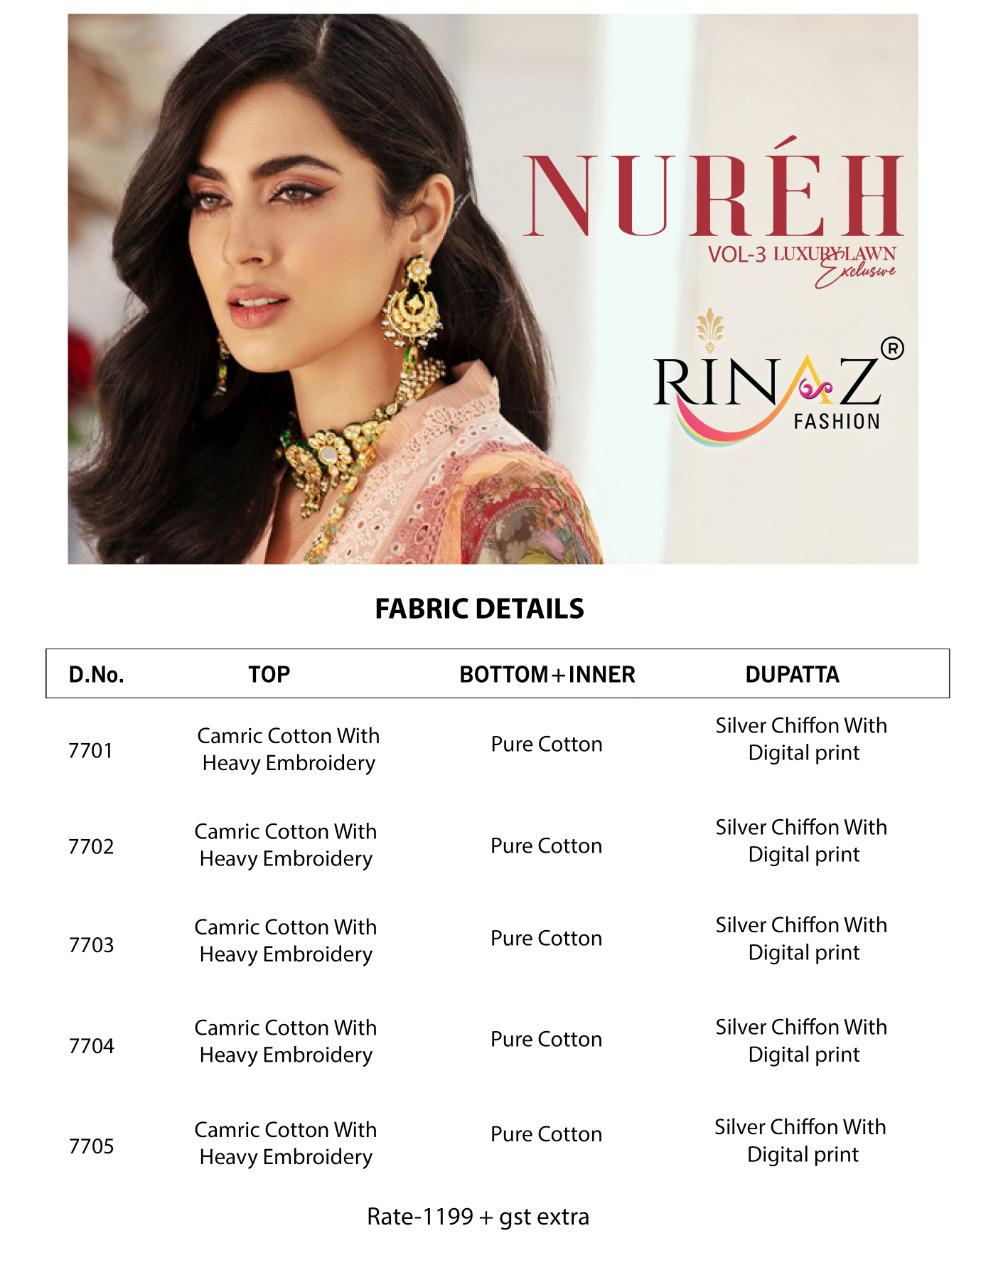 Rinaz Nureh Vol 3 Heavy Embroidery collection 7